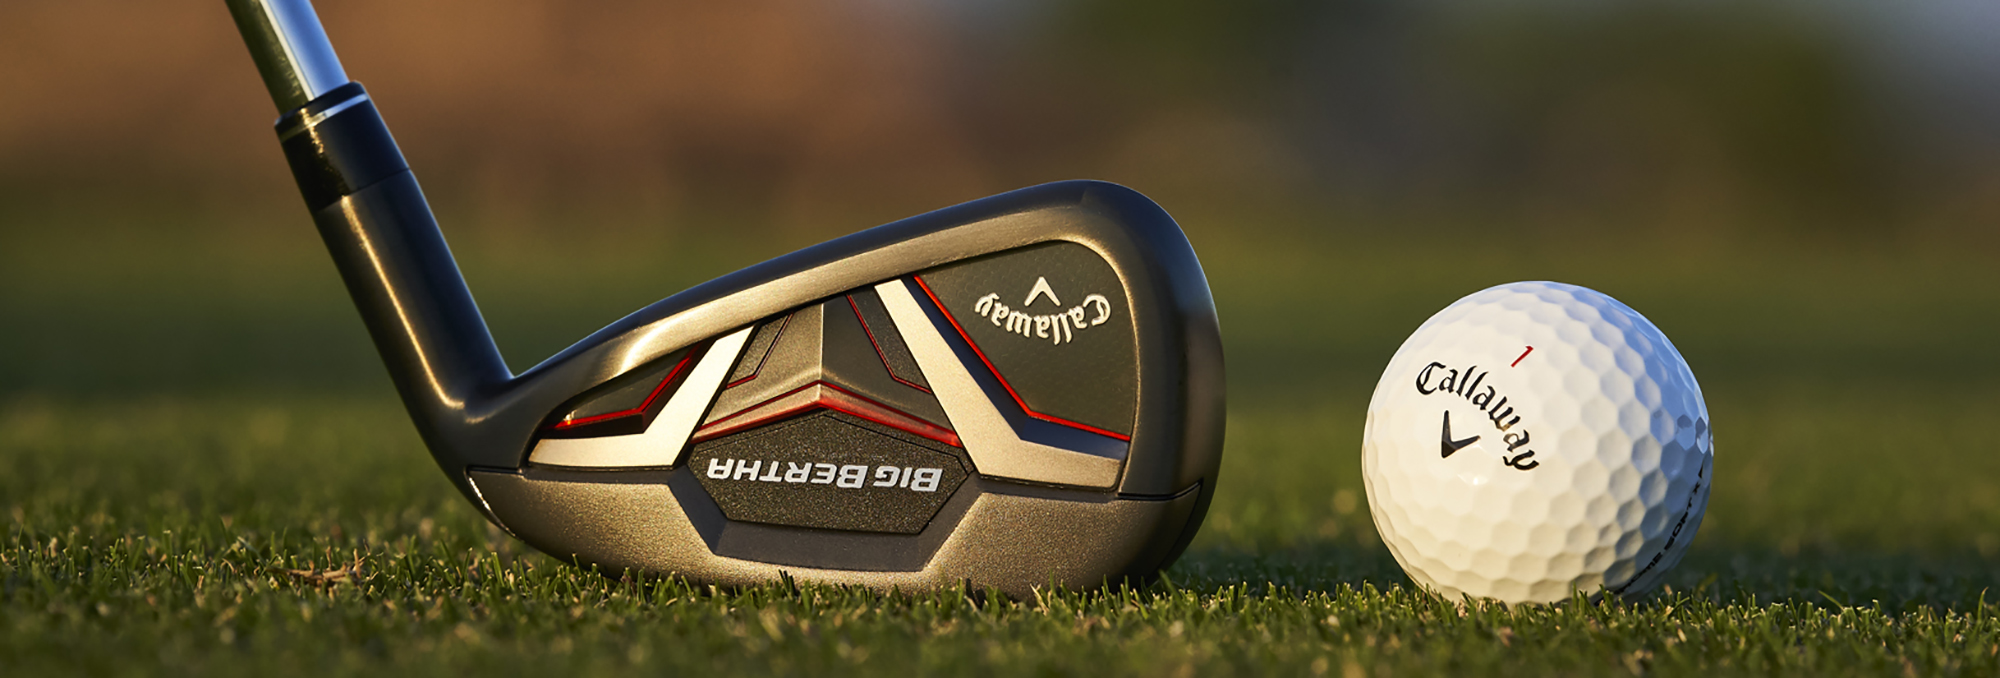 Callaway Big Bertha Irons on course with Callaway chrome soft golf ball